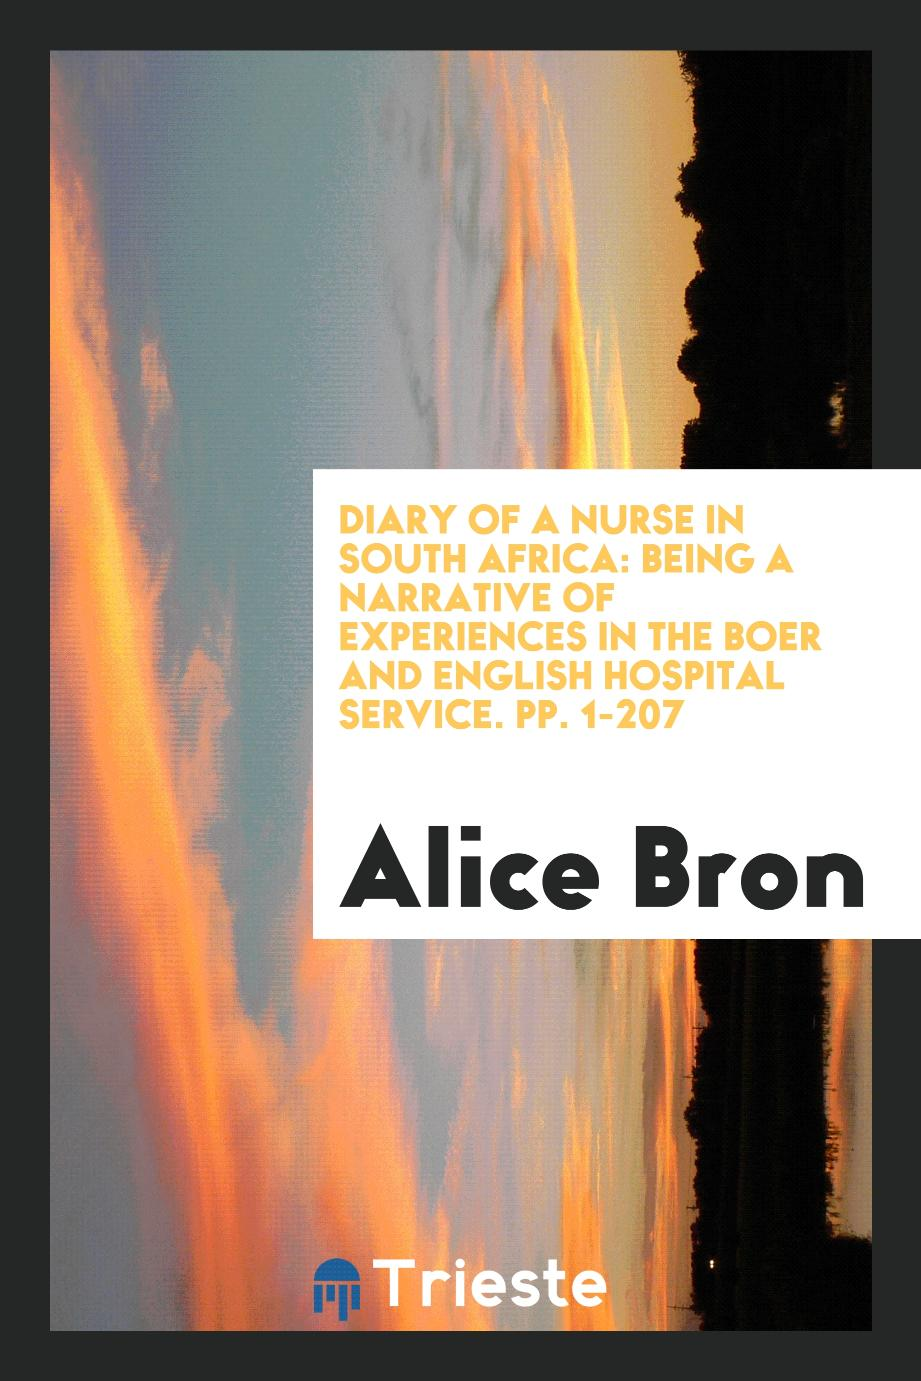 Diary of a Nurse in South Africa: Being a Narrative of Experiences in the Boer and English Hospital Service. pp. 1-207